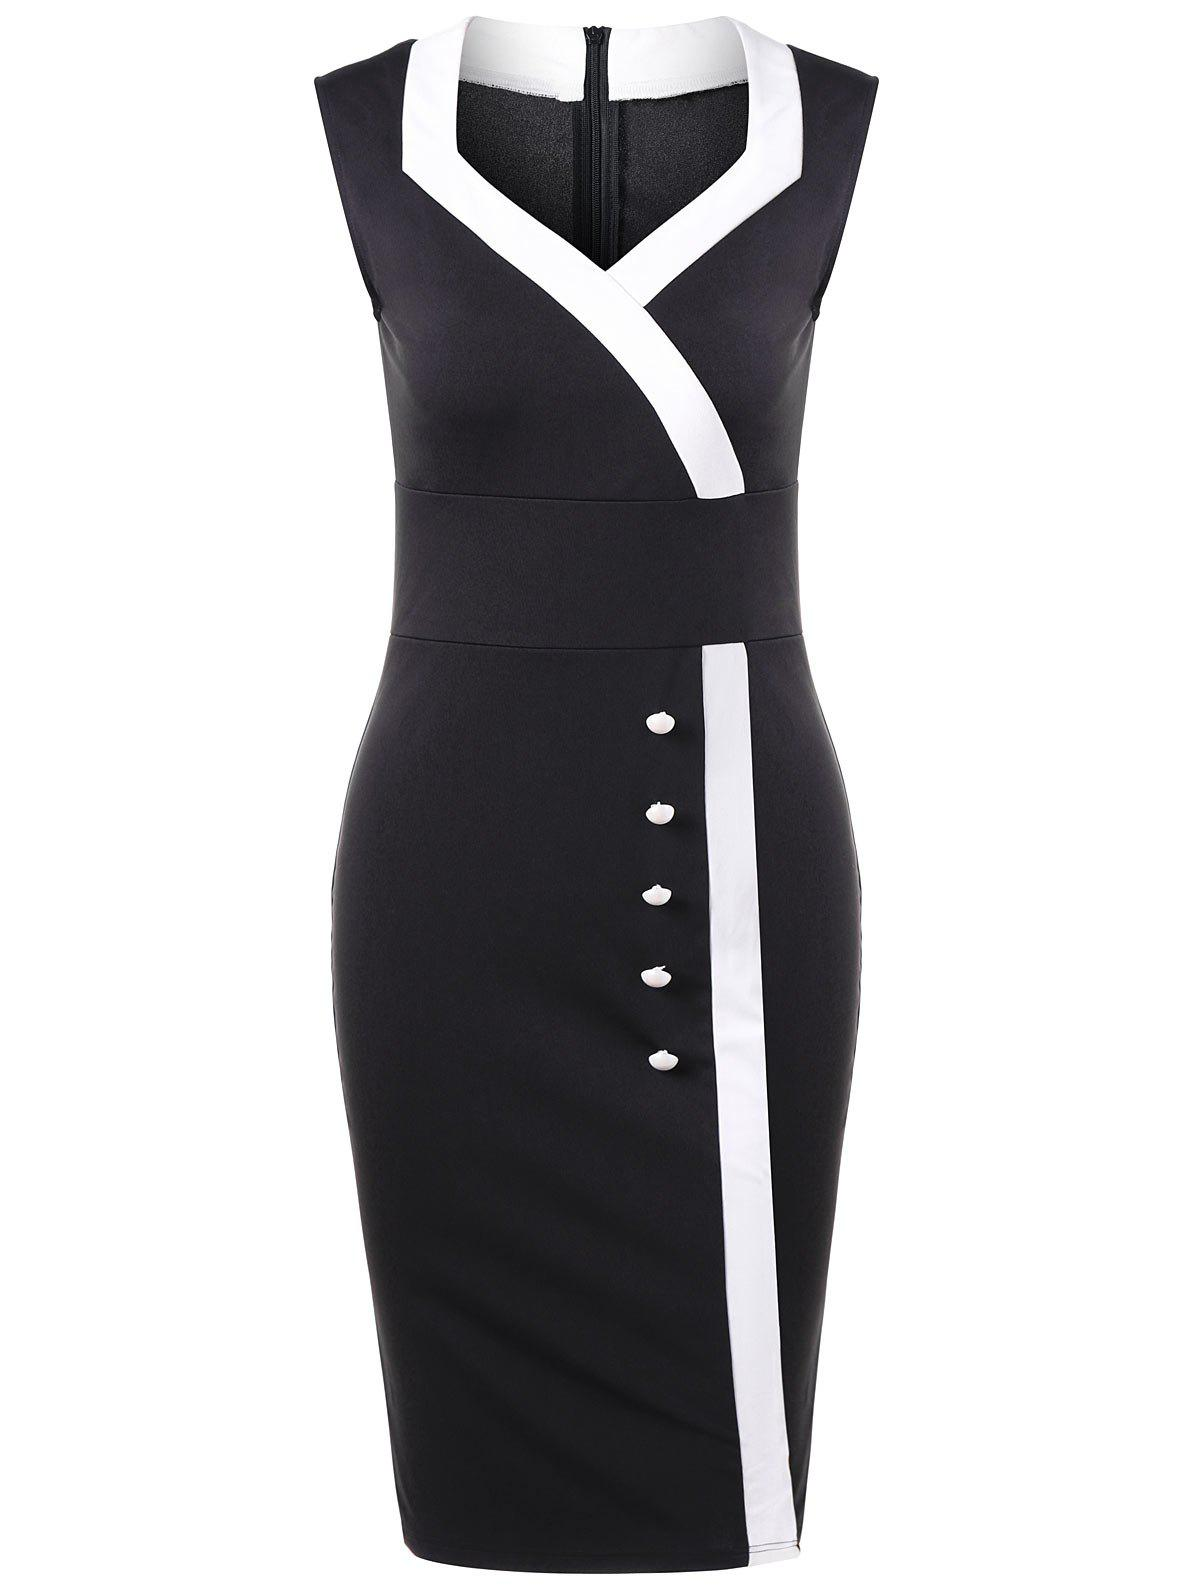 Trendy Sweetheart Neck Tight Pencil Fitted Sheath Dress